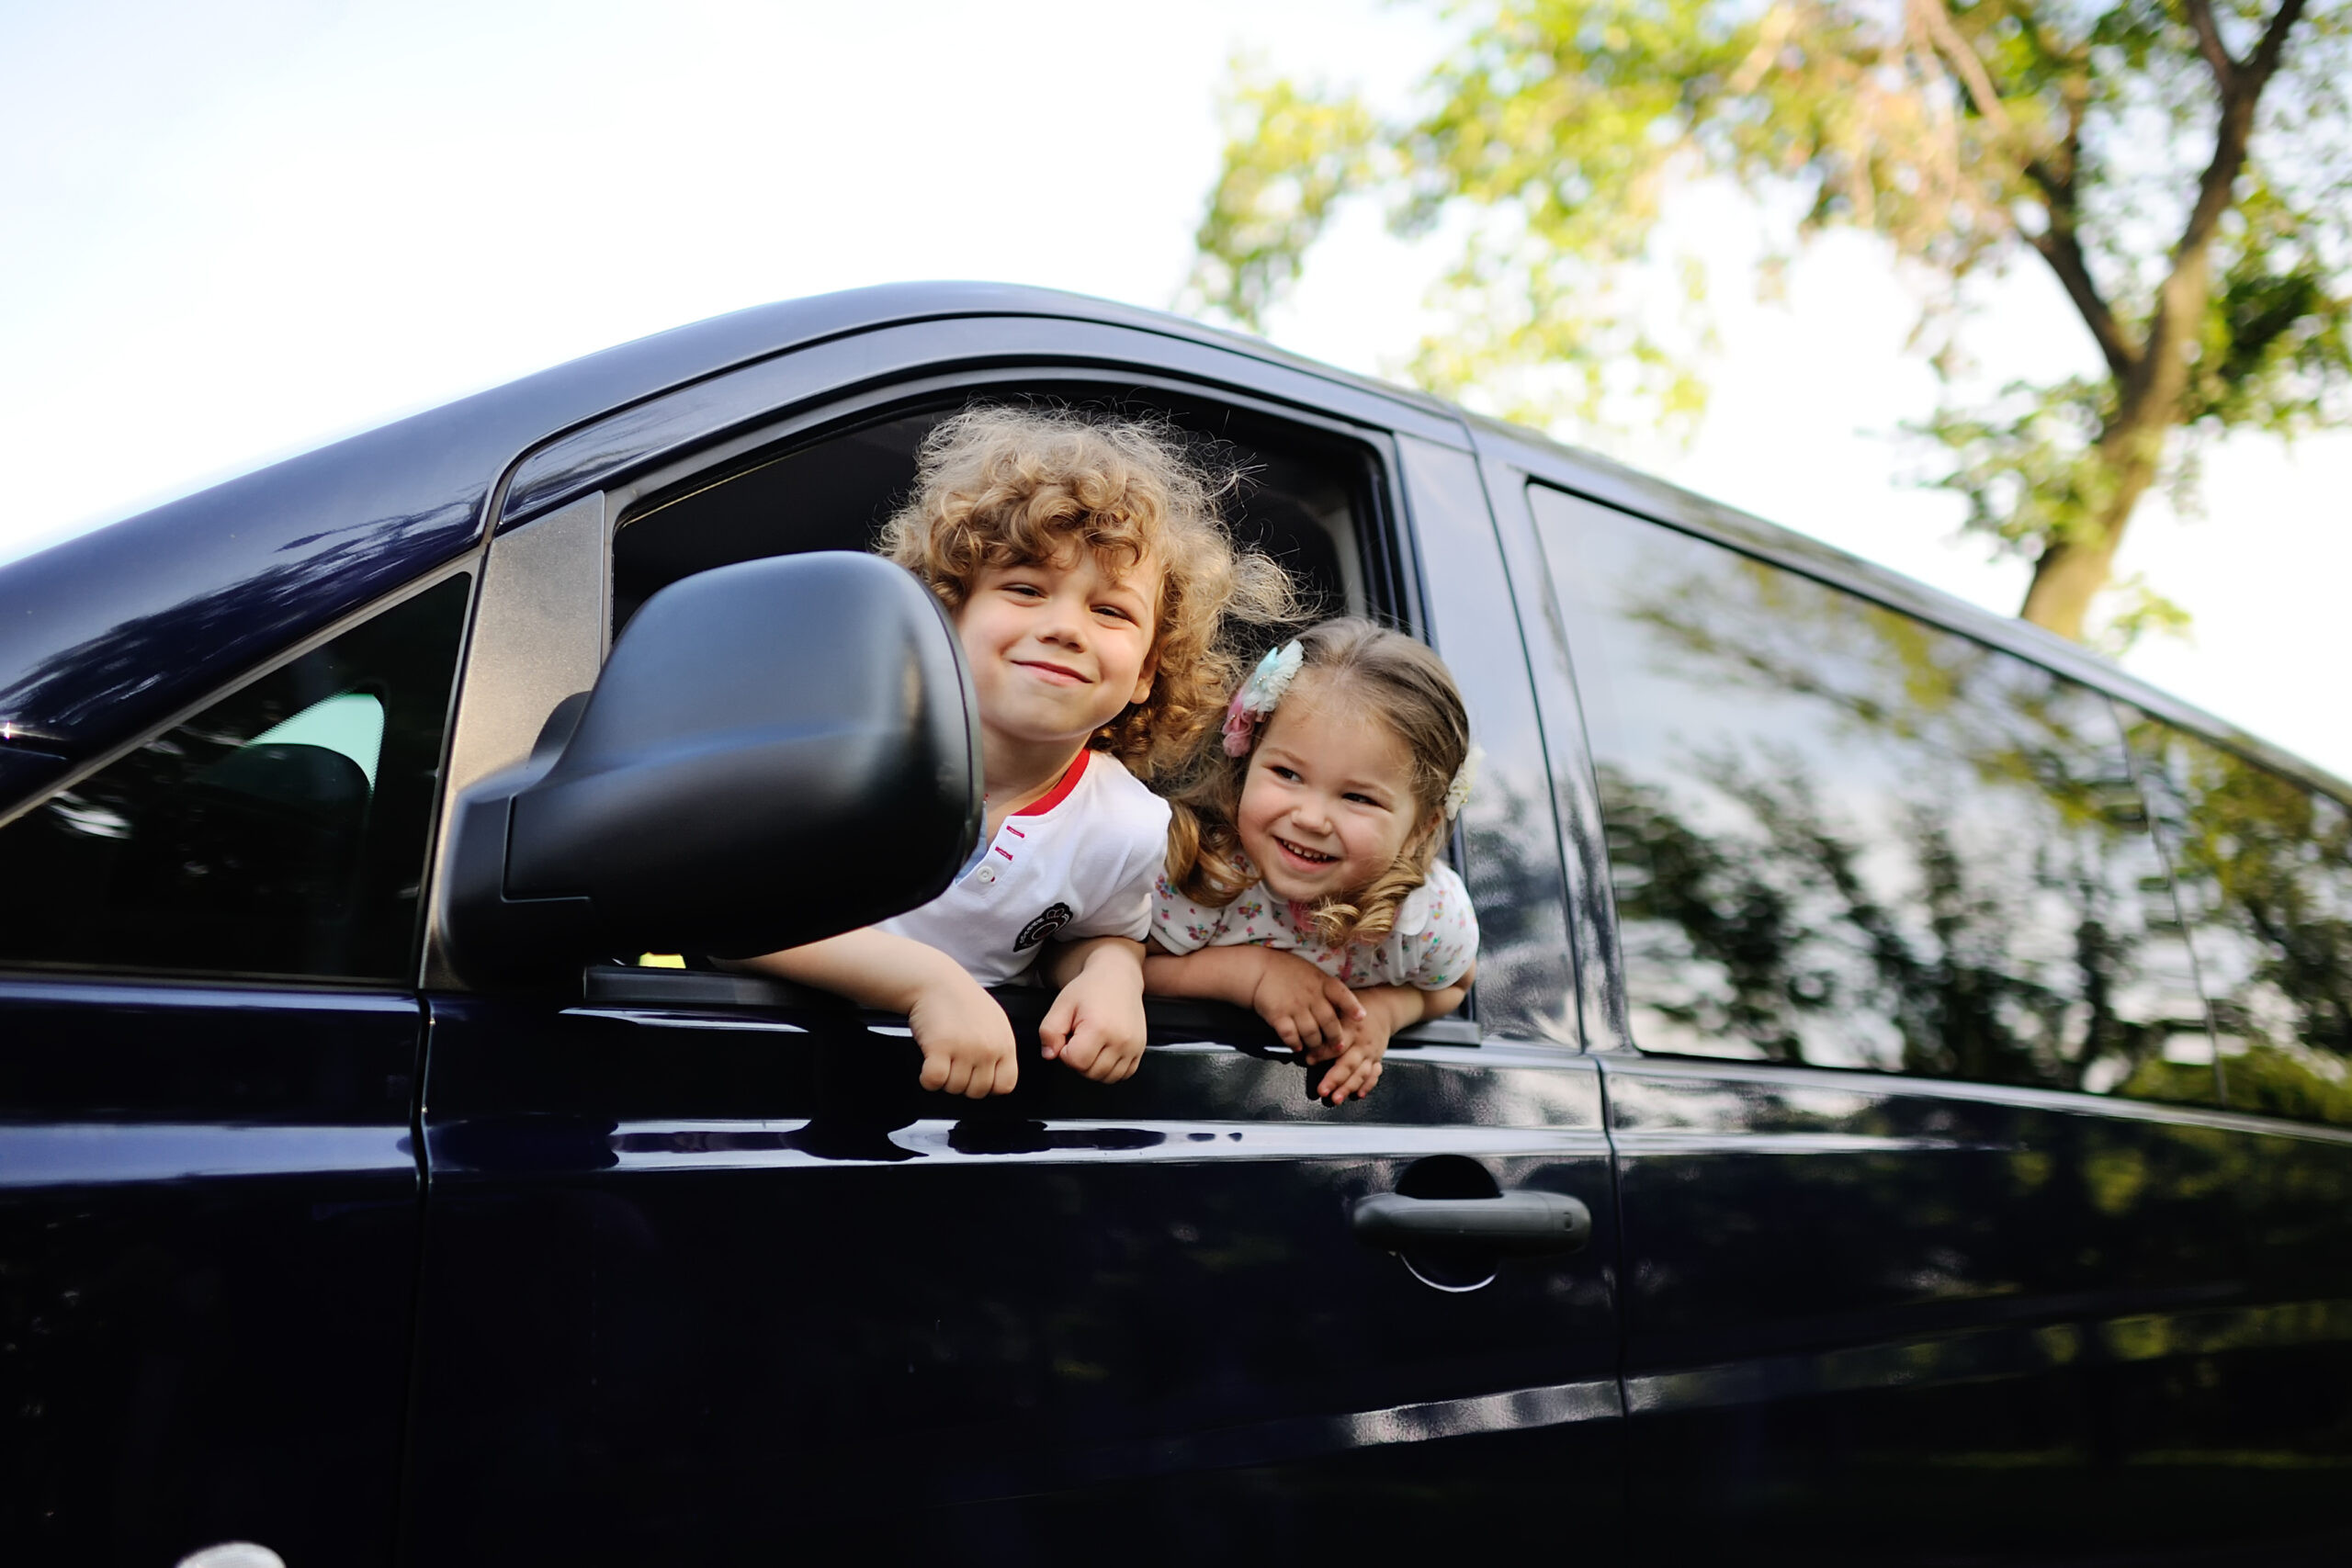 children look out from a car window.little boy and girl playing inside a minivan.family trip